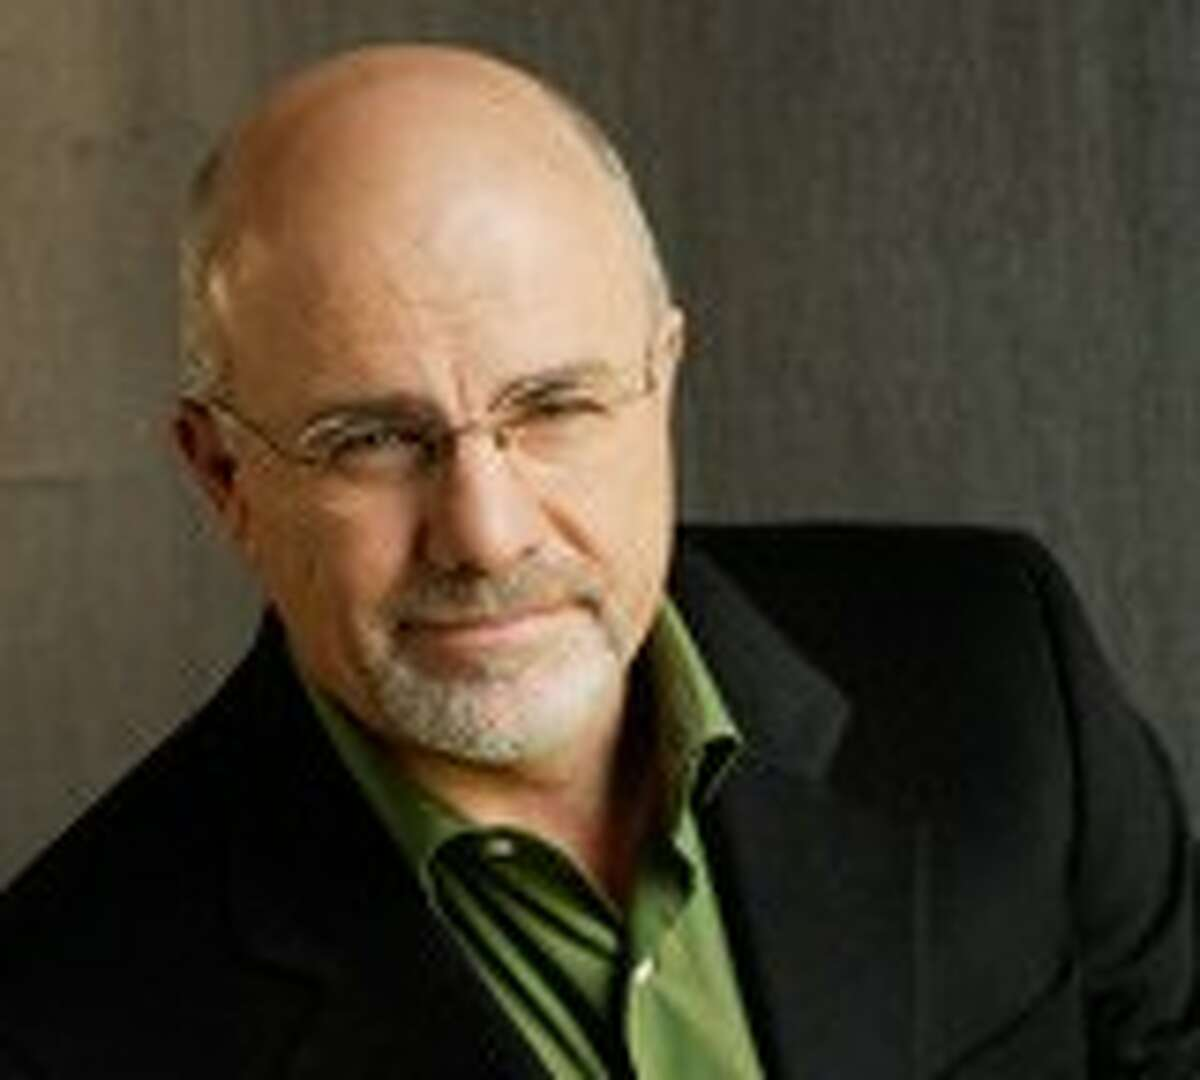 Dave Ramsey (Photo from www.daveramsey.com)